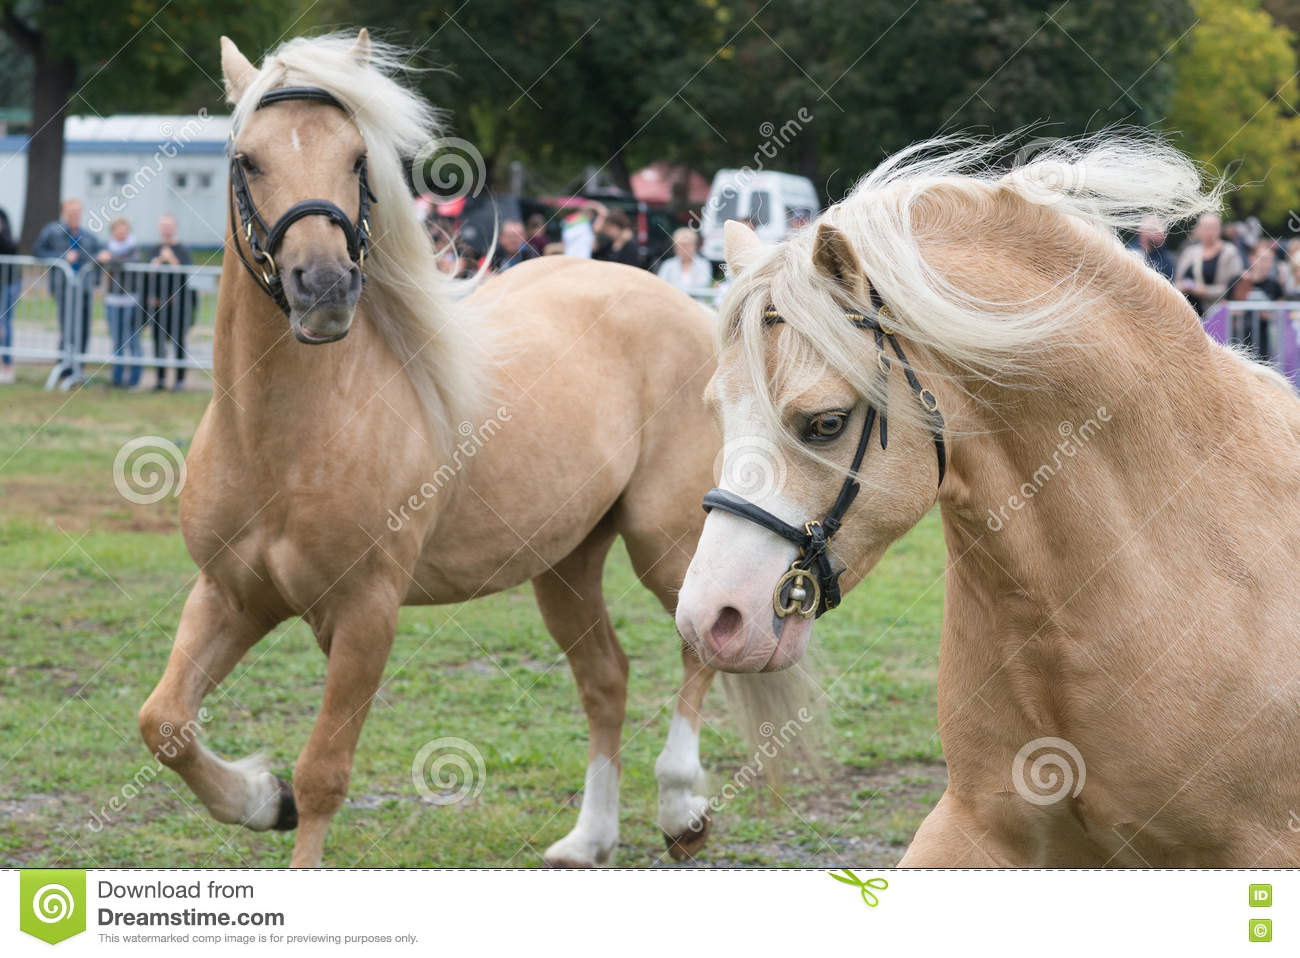 Two welsh pony cob palomino horses on equestrian show in run